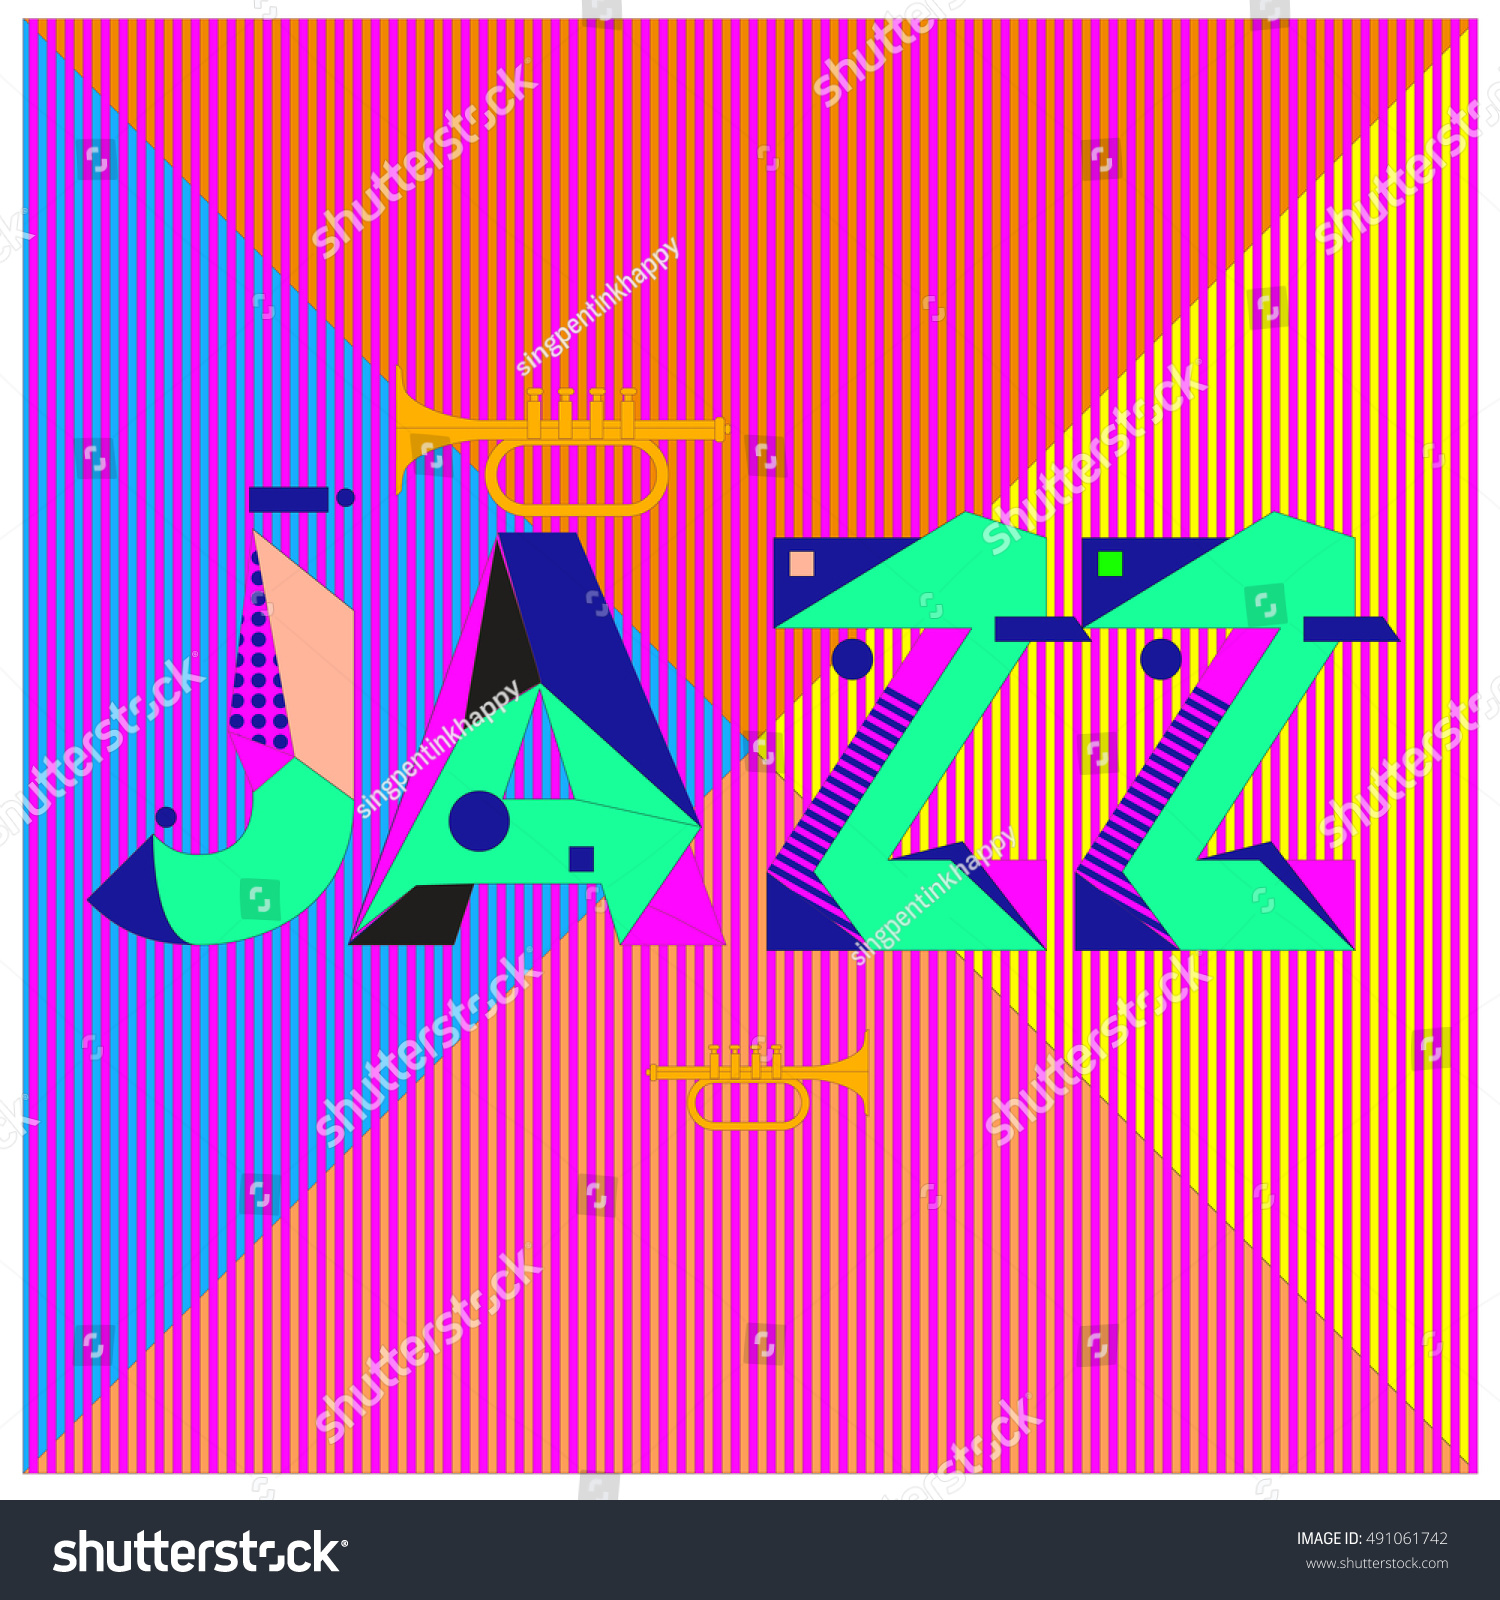 90s poster design - Vector Jazz Music Poster Template Design Background And Layout With 90s Memphis Style